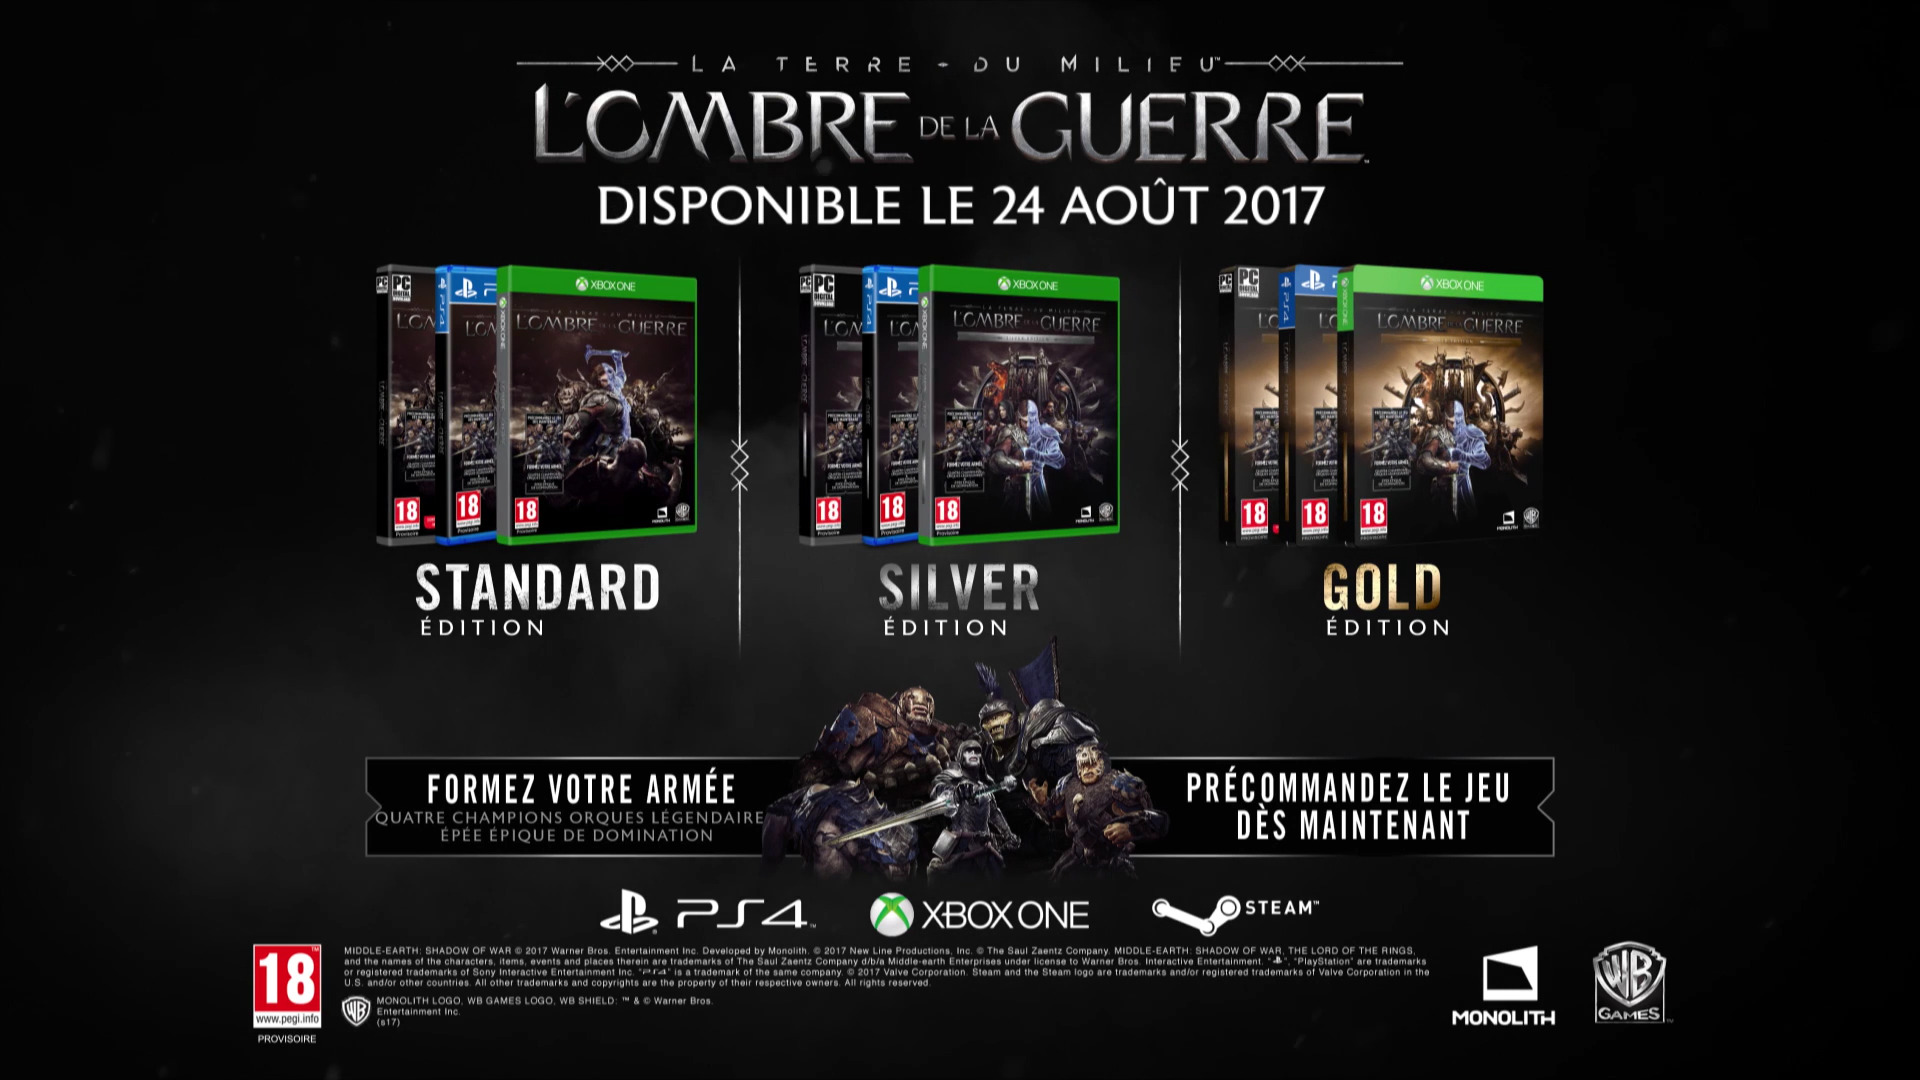 la terre du milieu l ombre de la guerre d voil dans un trailer et optimis xbox scorpio. Black Bedroom Furniture Sets. Home Design Ideas